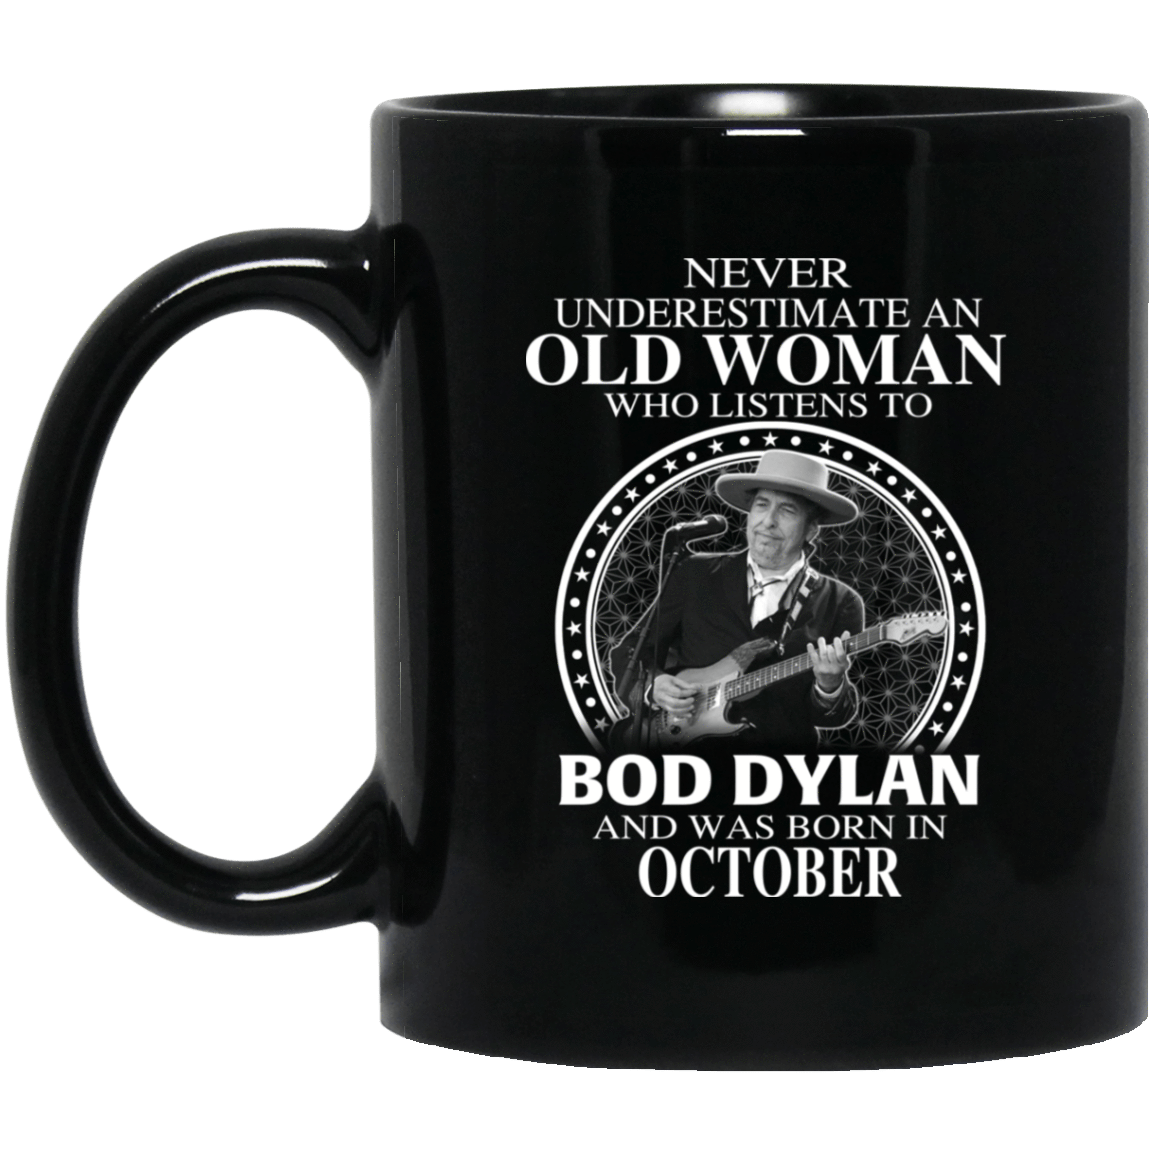 An Old Woman Who Listens To Bob Dylan And Was Born In October Mug 1065-10181-76154130-49307 - Tee Ript